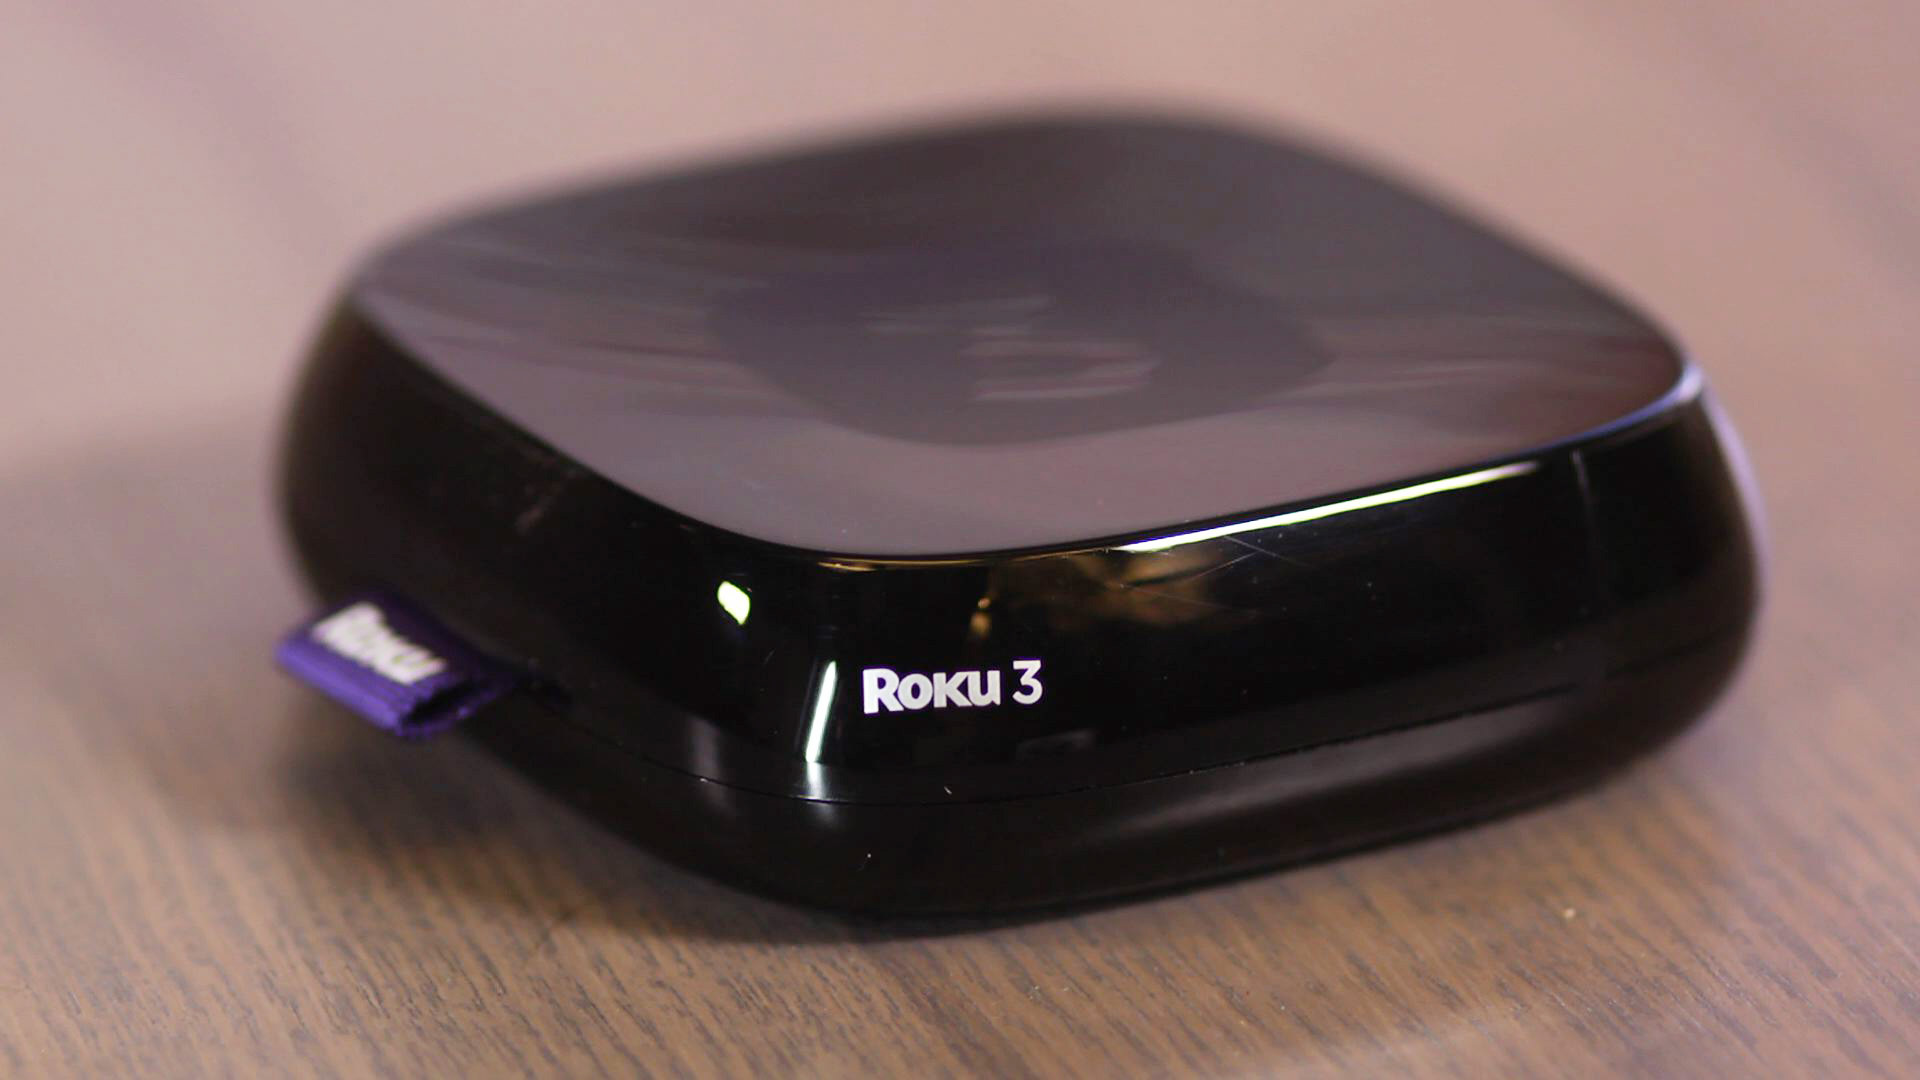 Video: The Roku 3 is our favorite streaming video box